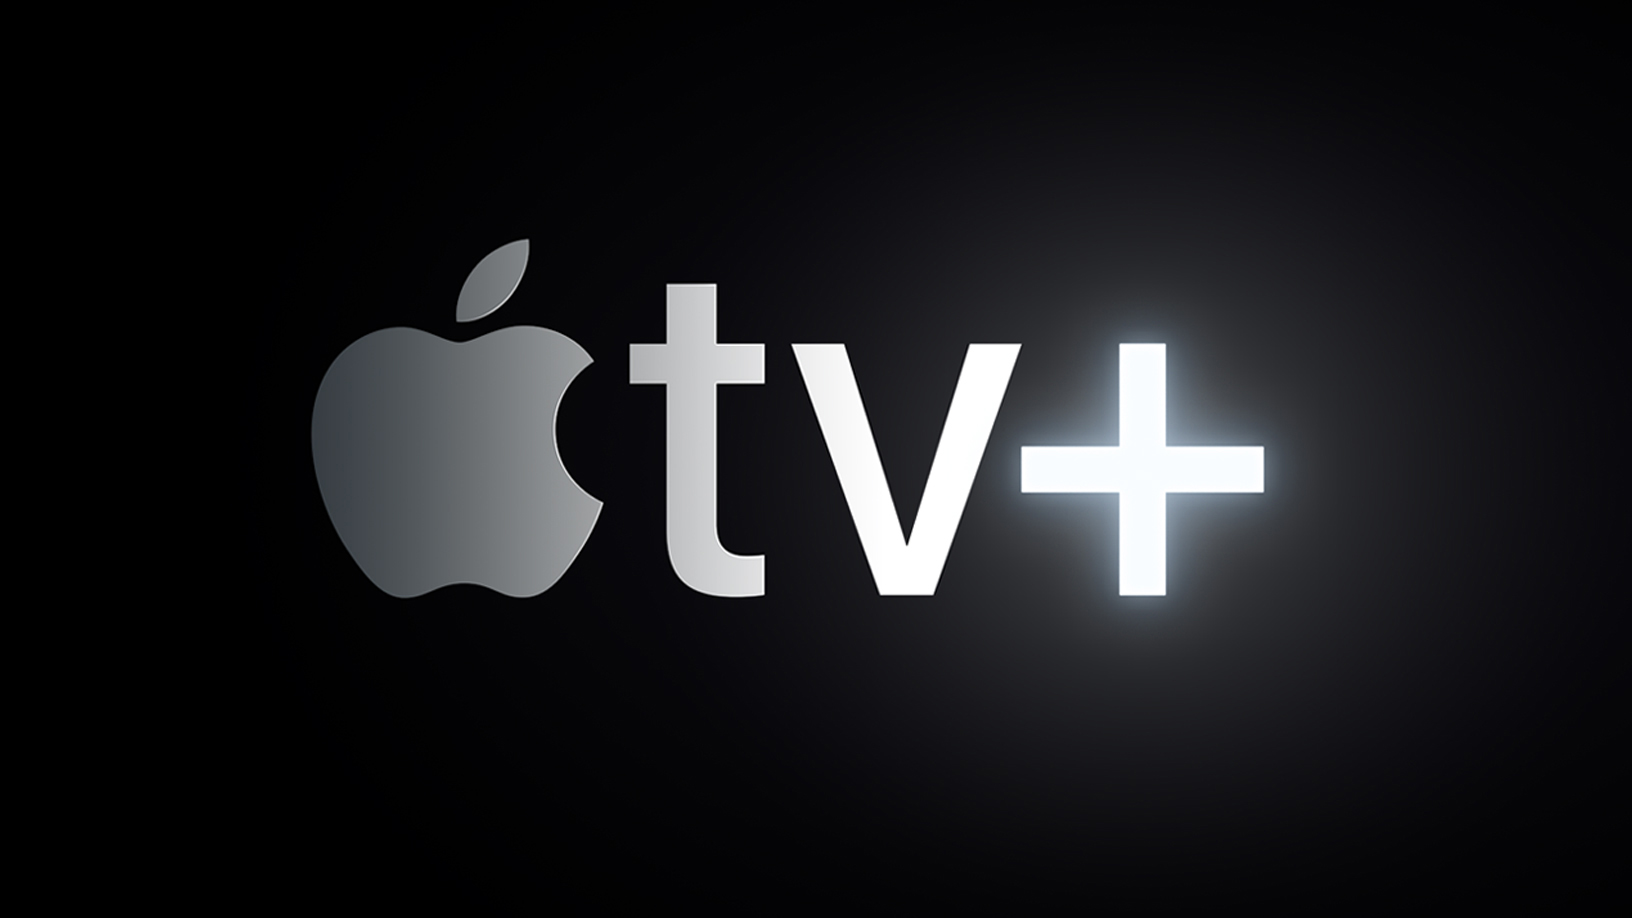 Apple-introduces-apple-tv-plus-03252019.jpg